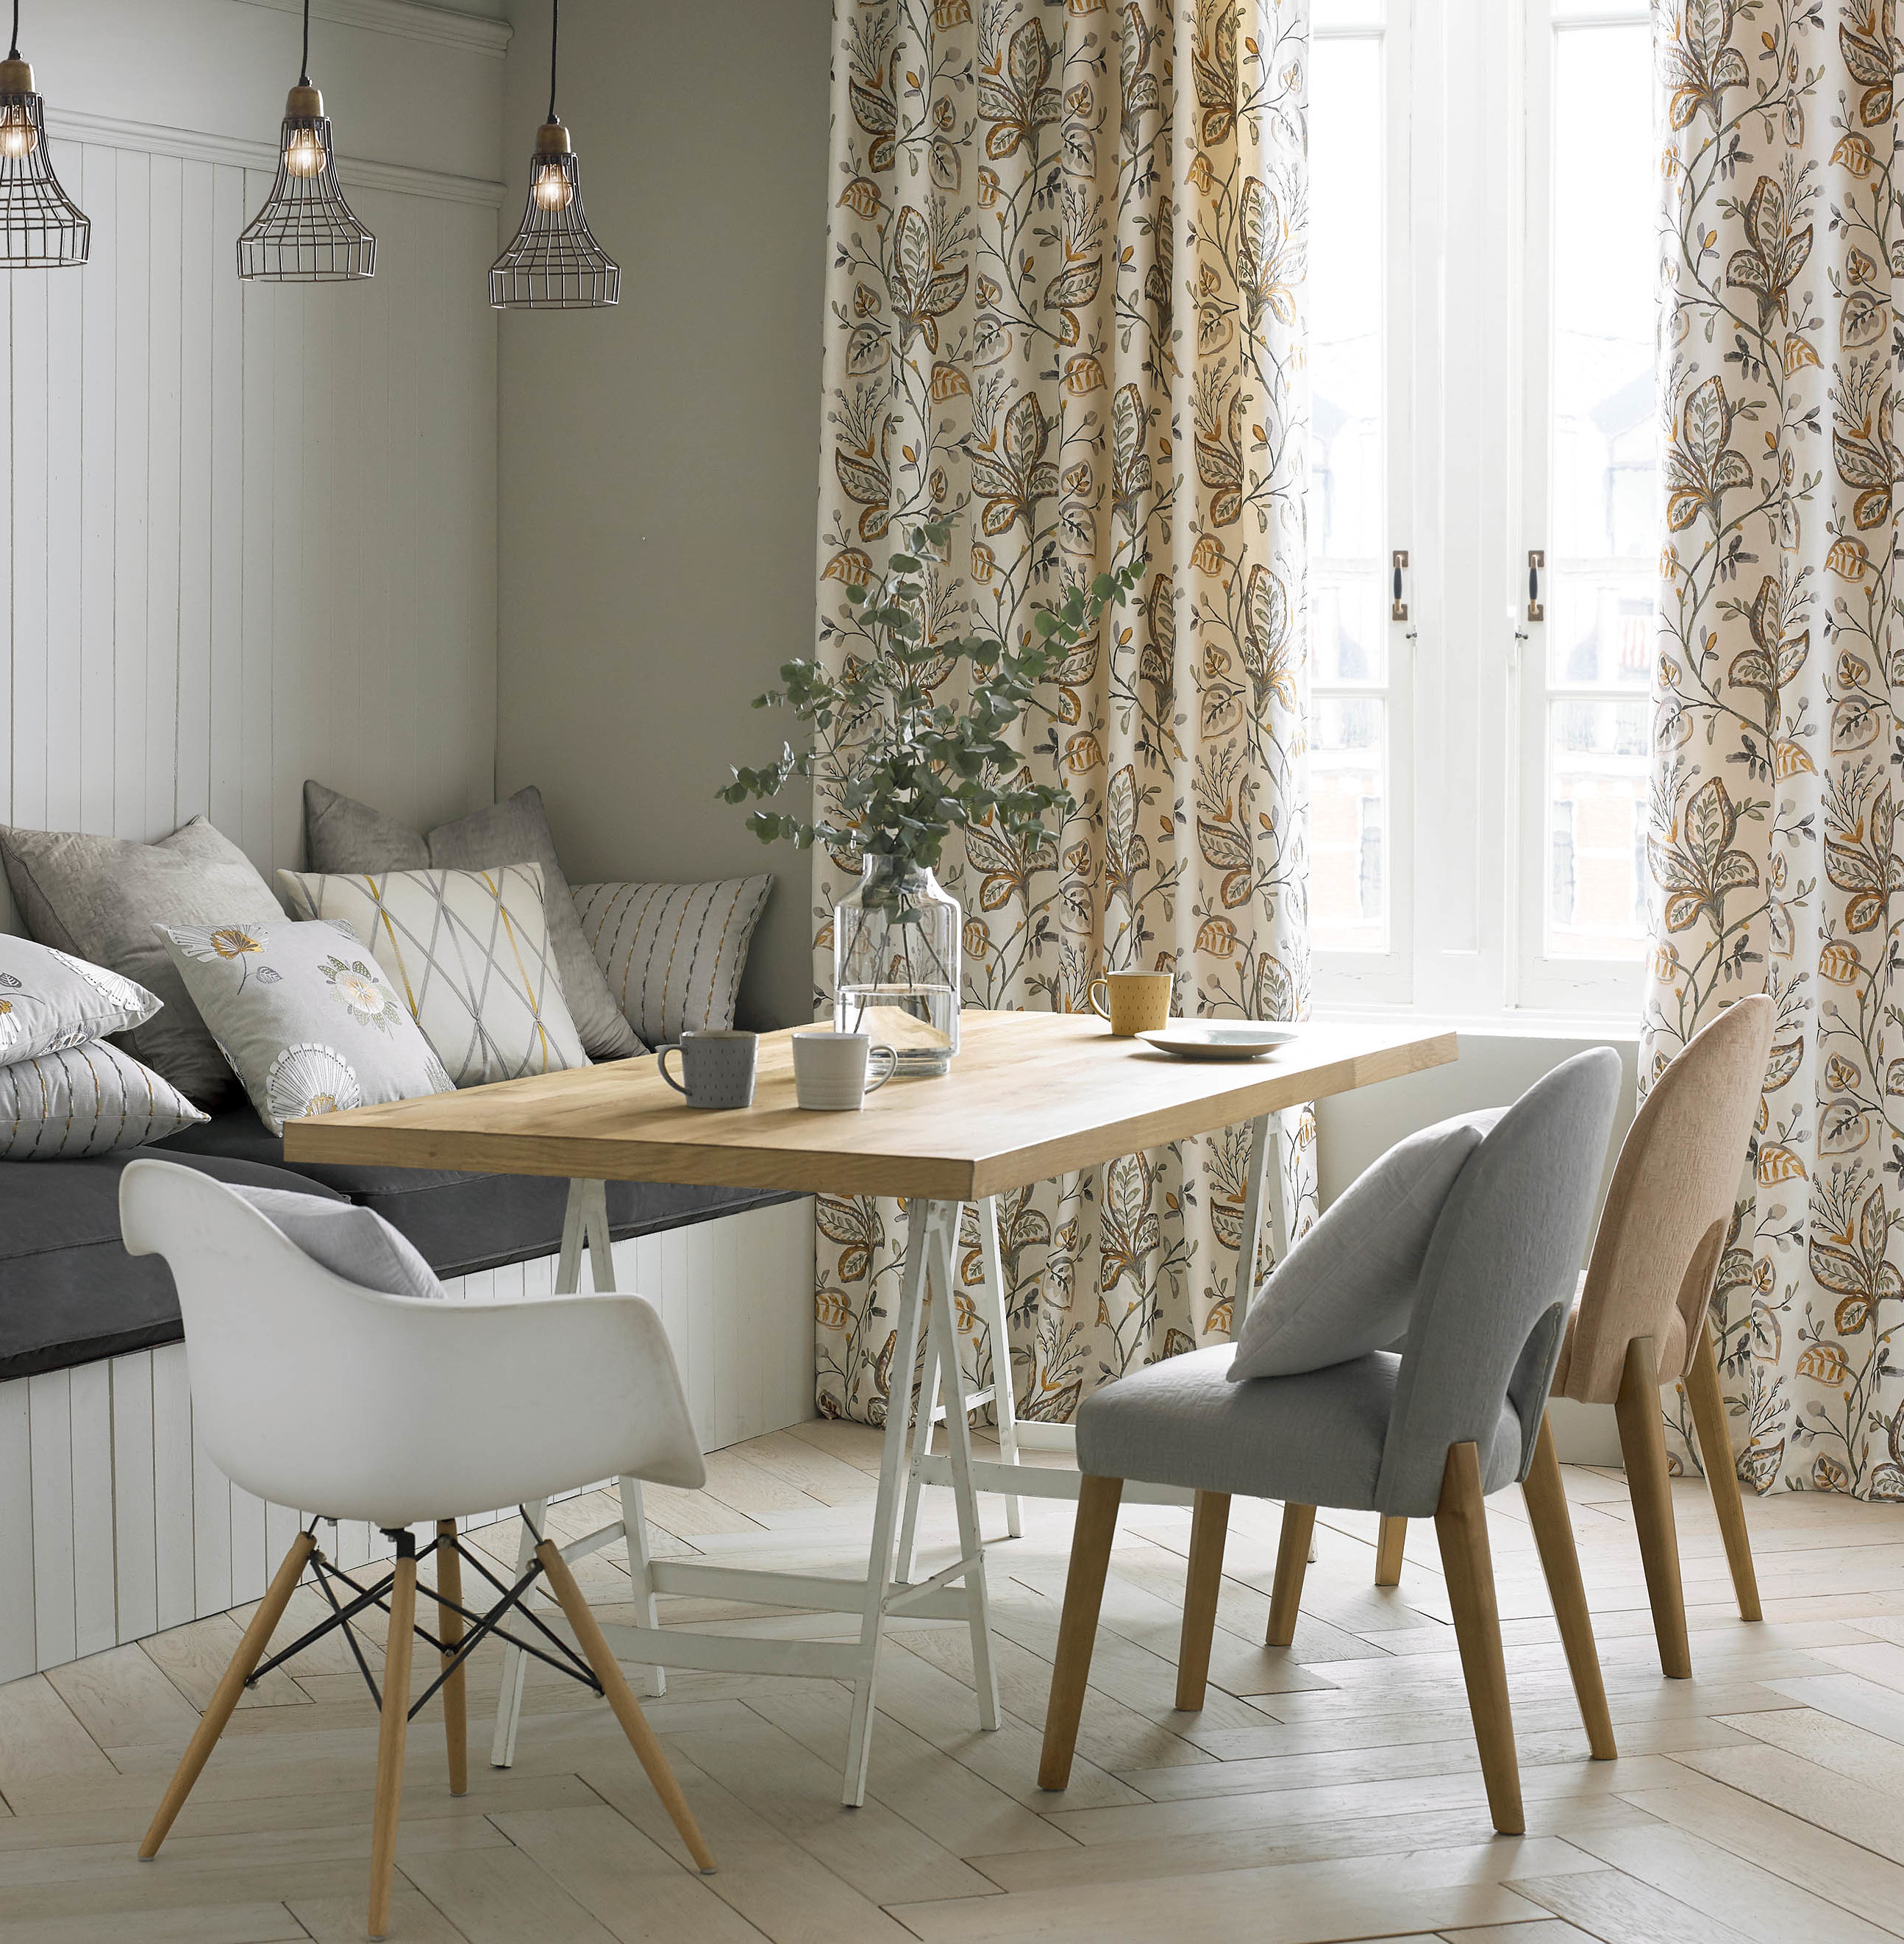 Malmo KAI Fabrics Ashley Wilde Charles Parsons Curtains Upholstery cushions interior design